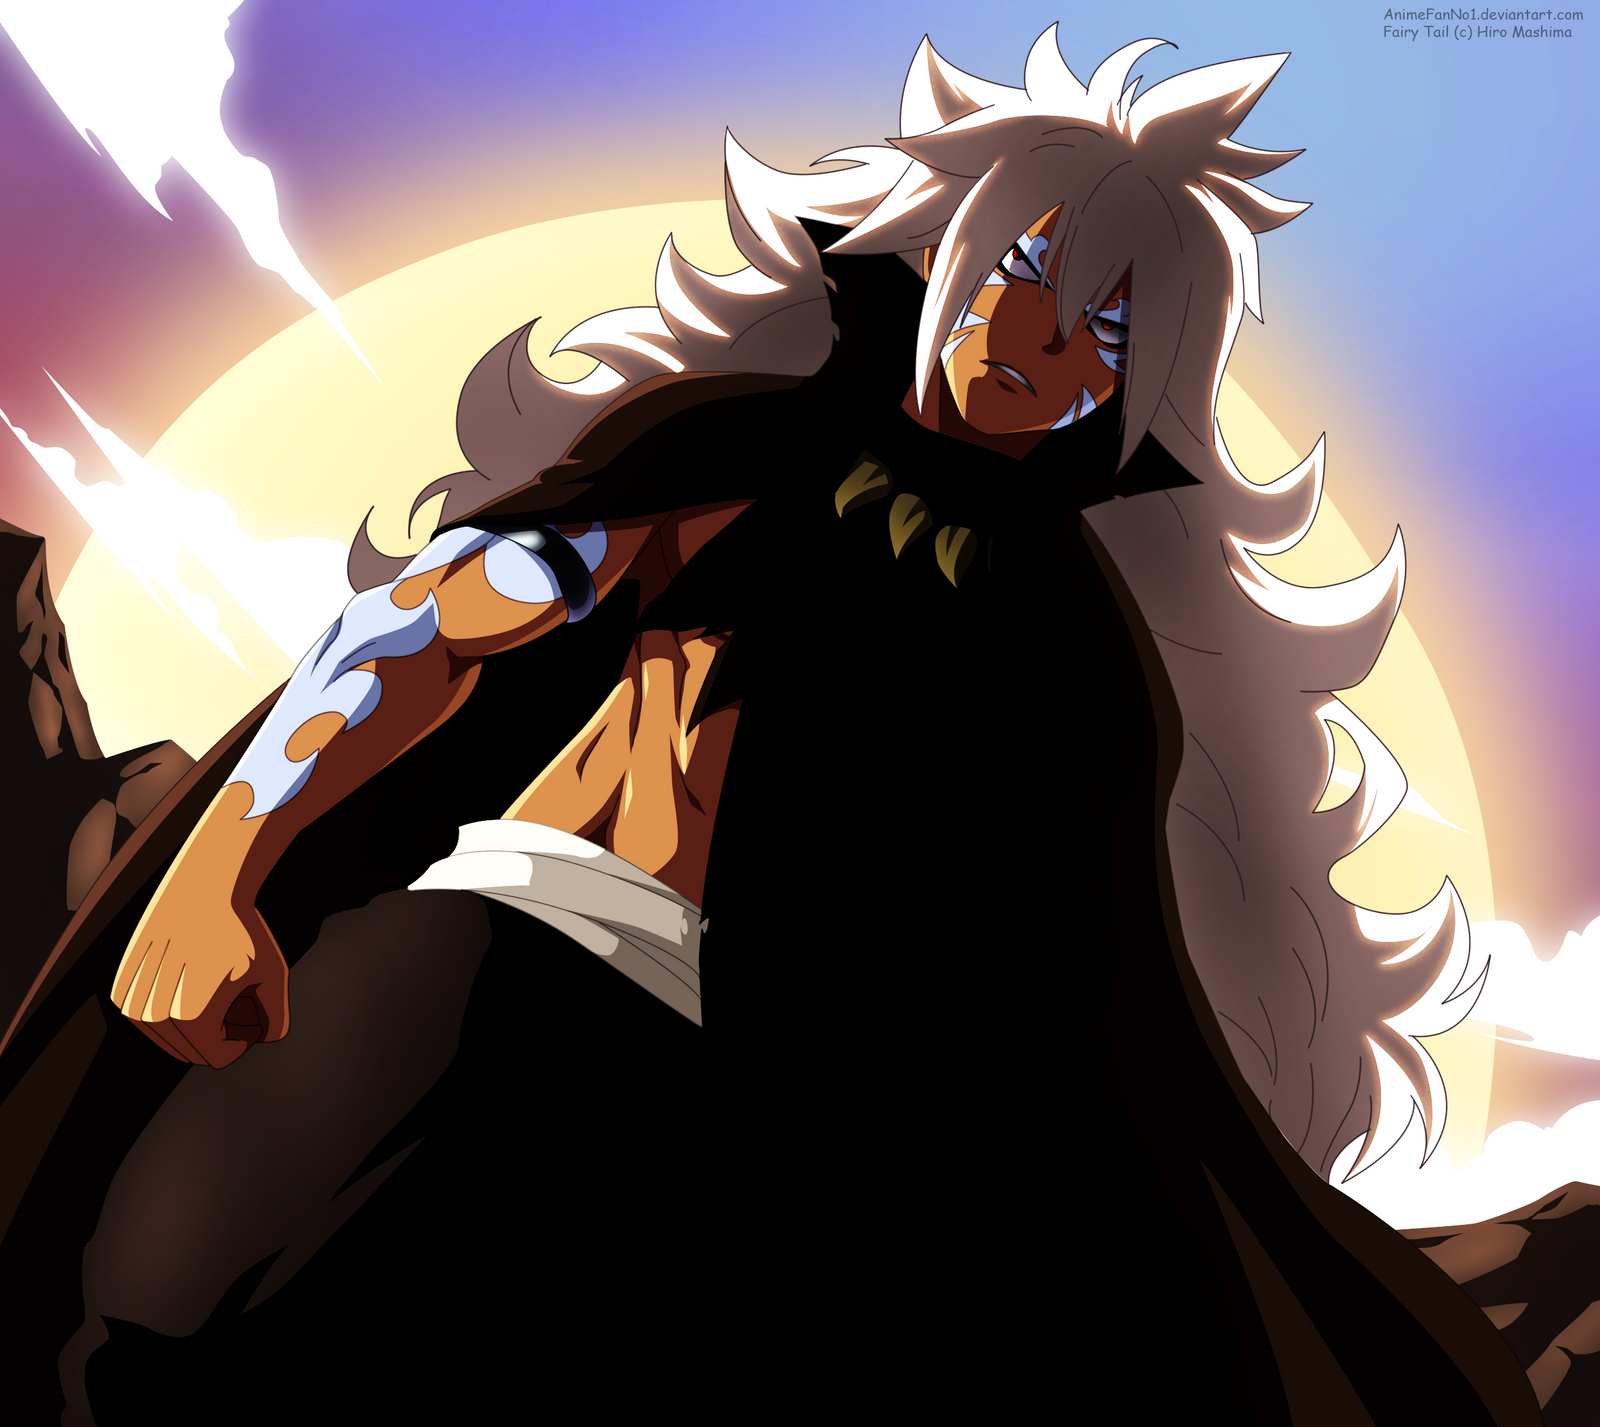 Images of Acnologia Fairy Tail Wallpaper Hd - #SC